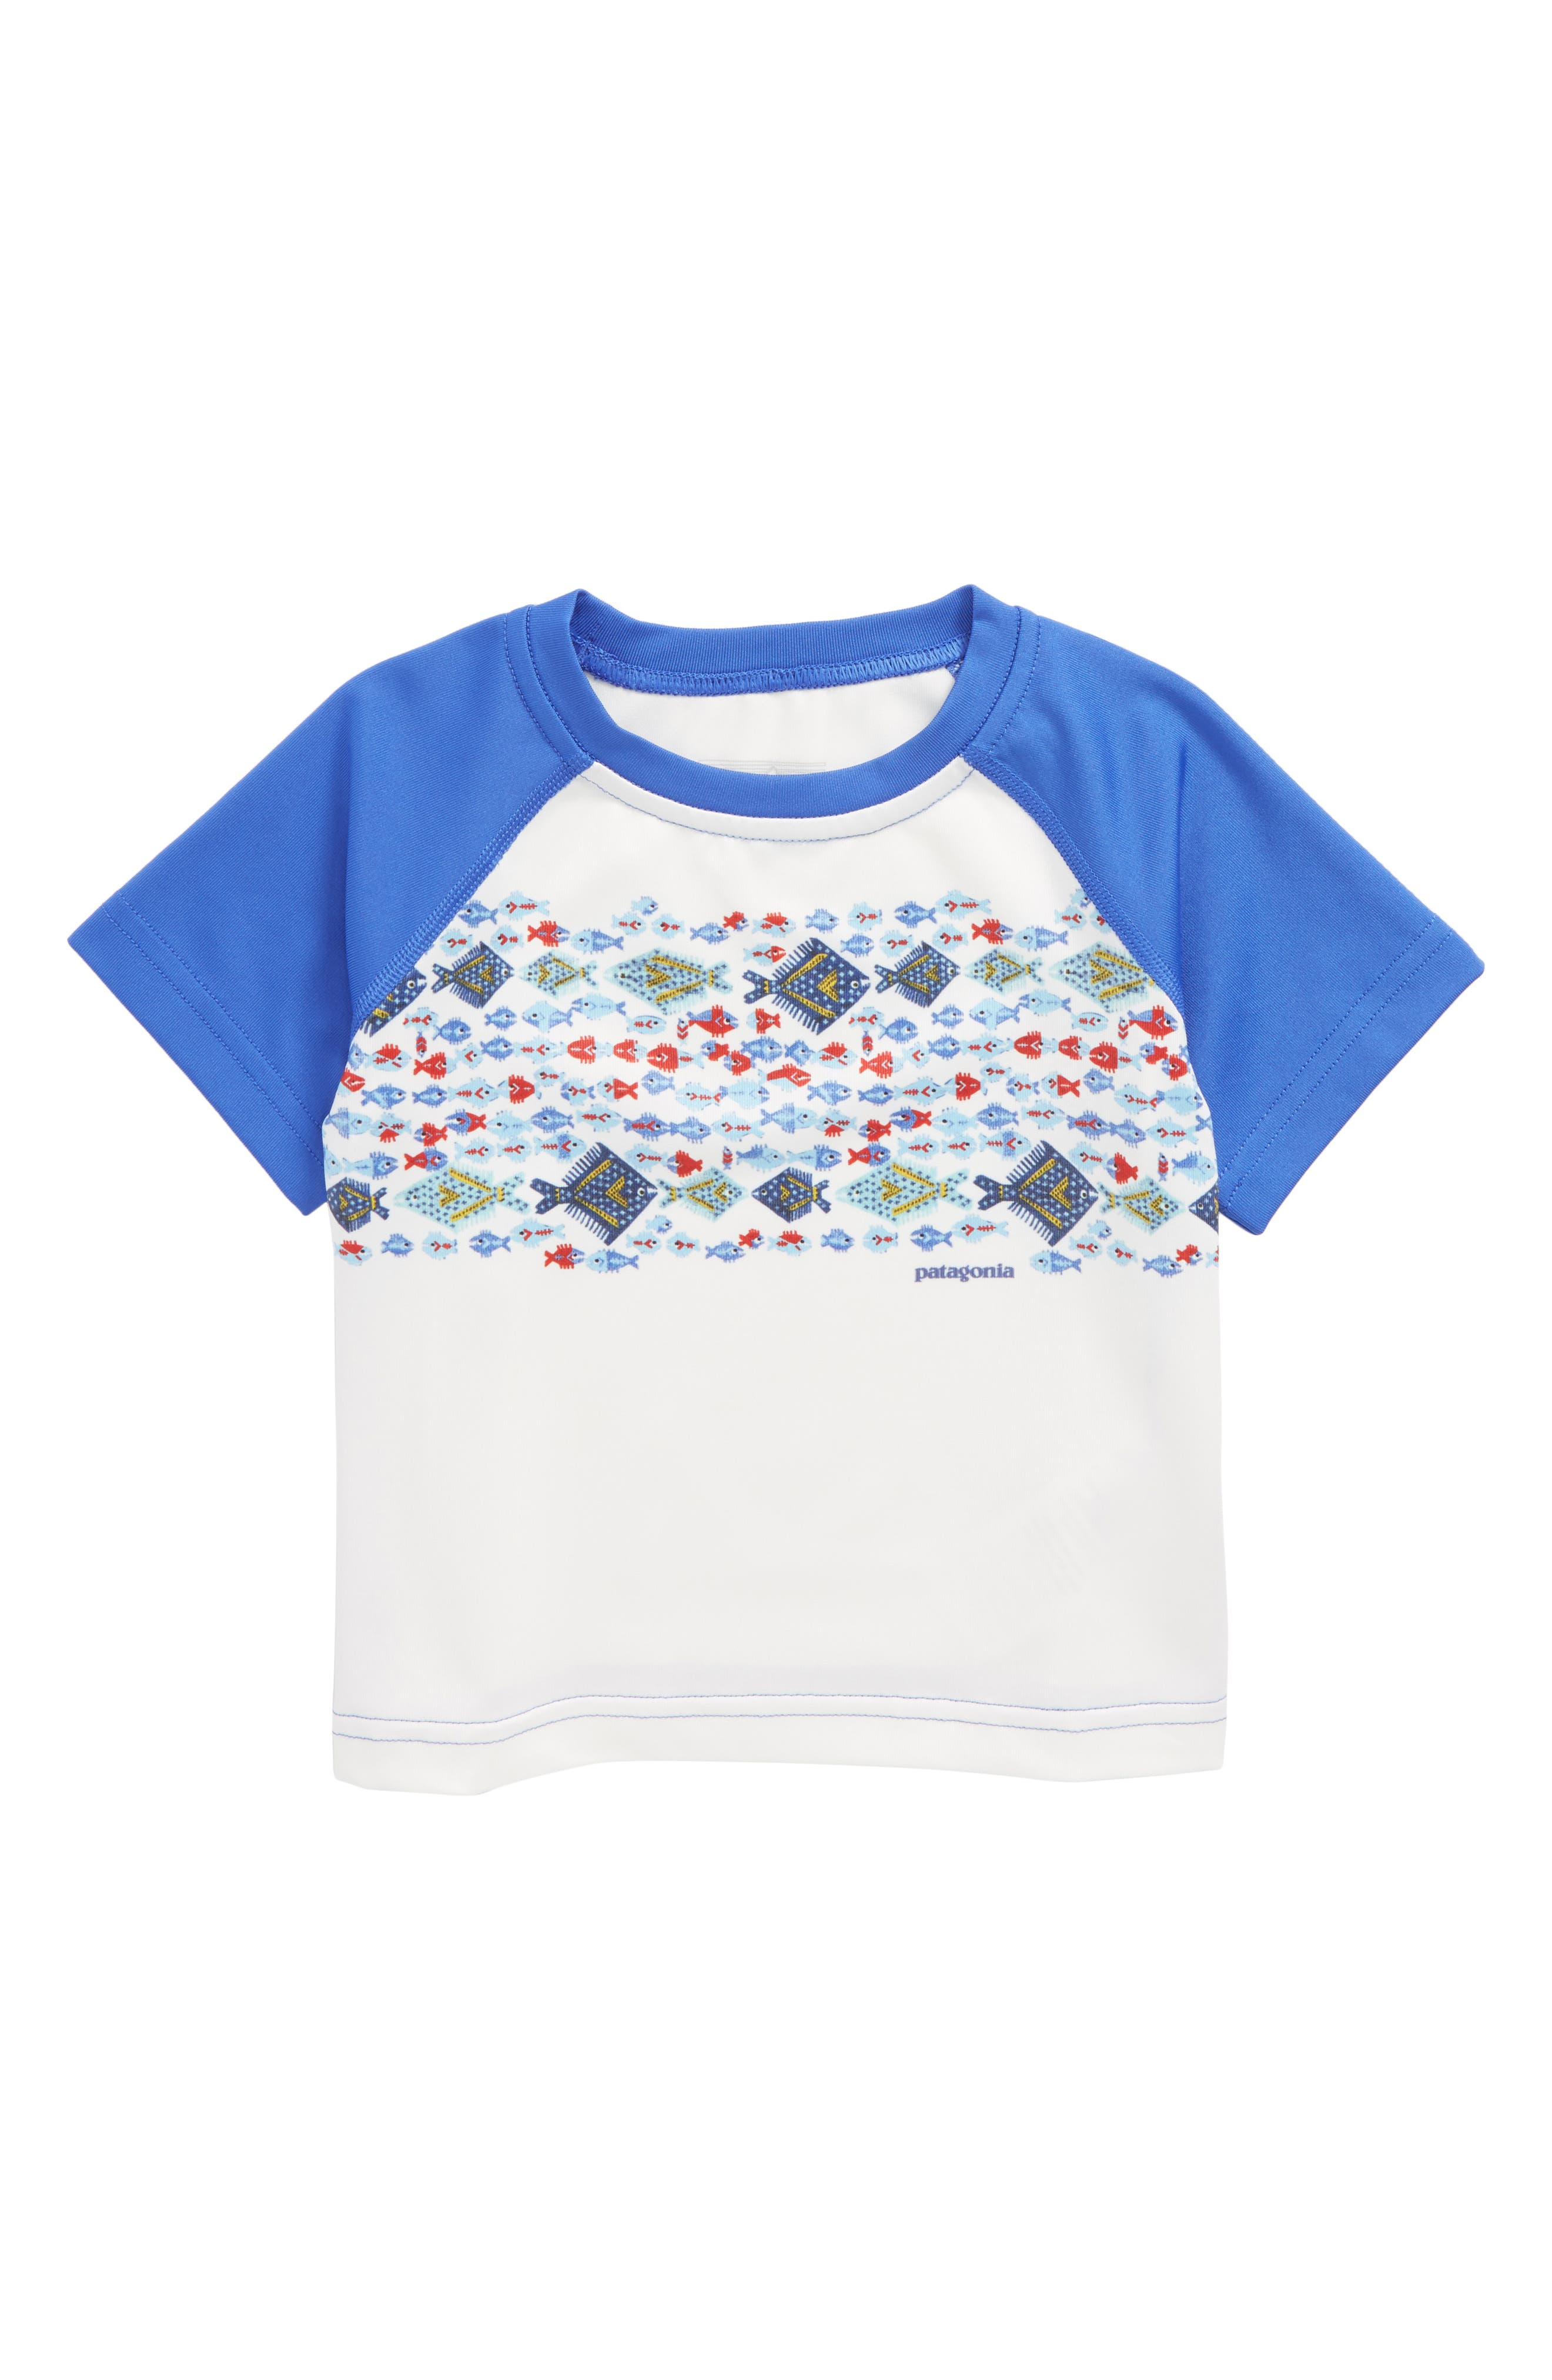 Capilene<sup>®</sup> Graphic T-Shirt,                         Main,                         color, Bwim Birch White Imperial Blue